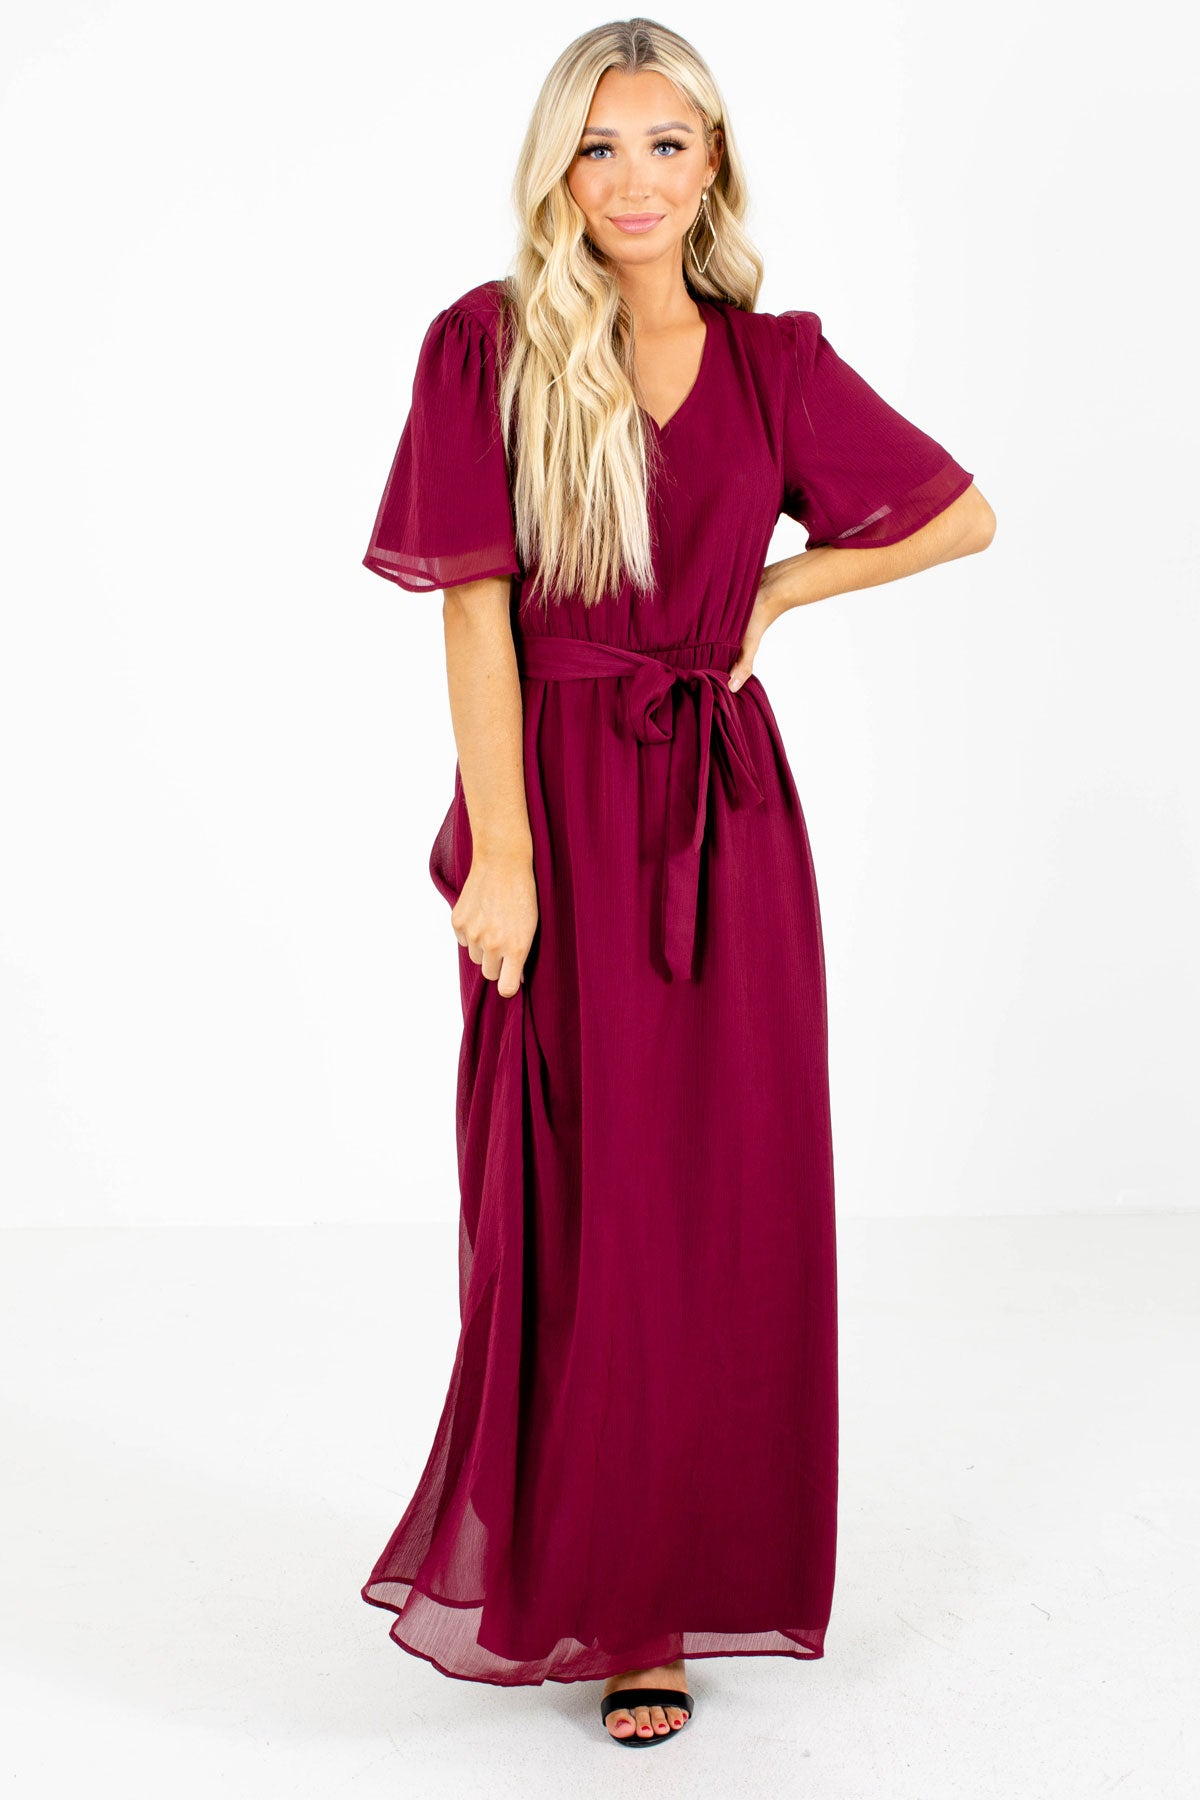 Burgundy Waist Tie Detail Boutique Maxi Dresses for Women